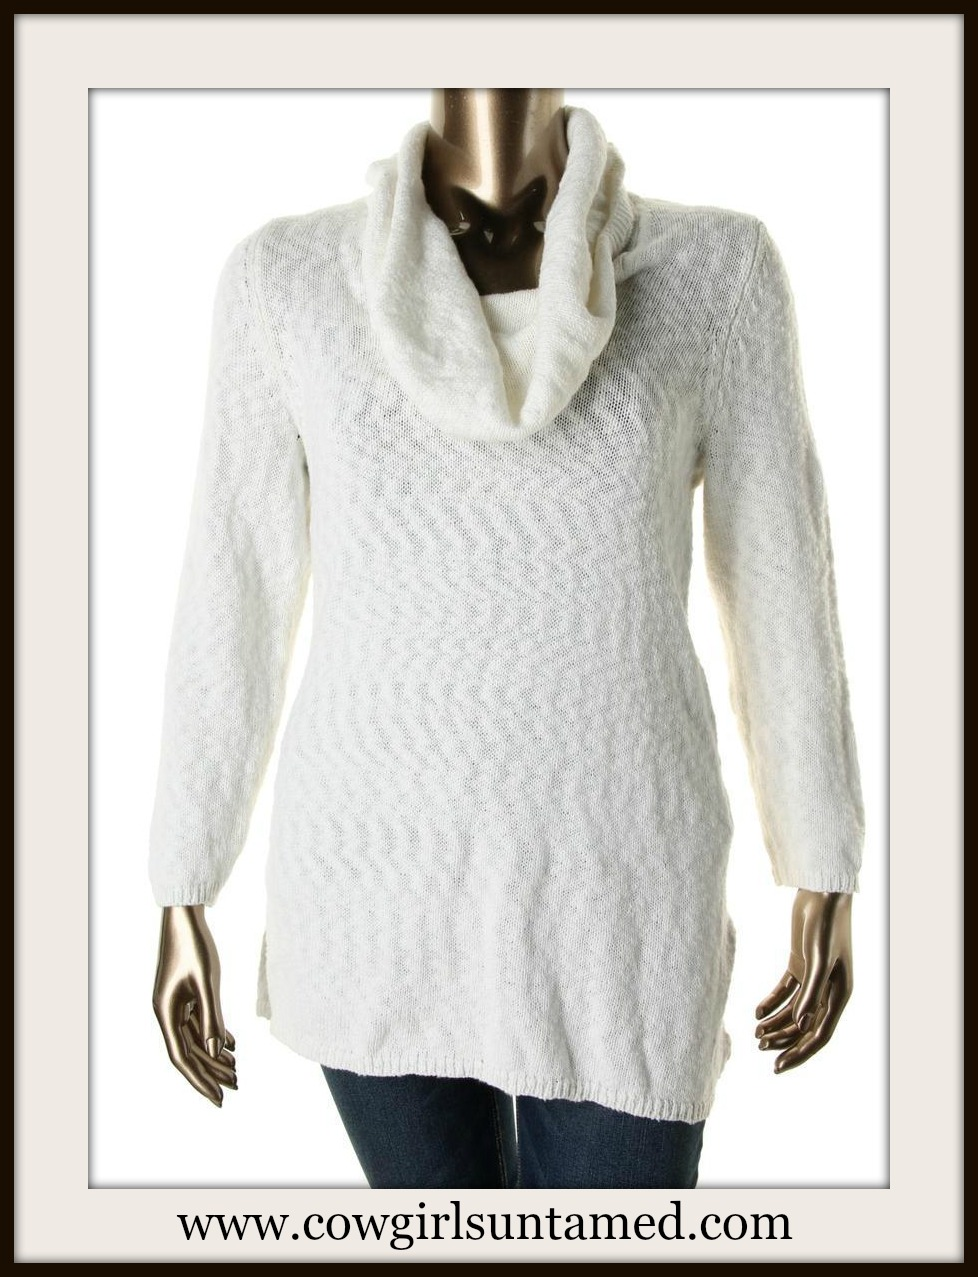 COWGIRL STYLE SWEATER White Marled Cowl Neck Designer PLUS SIZE Tunic Sweater